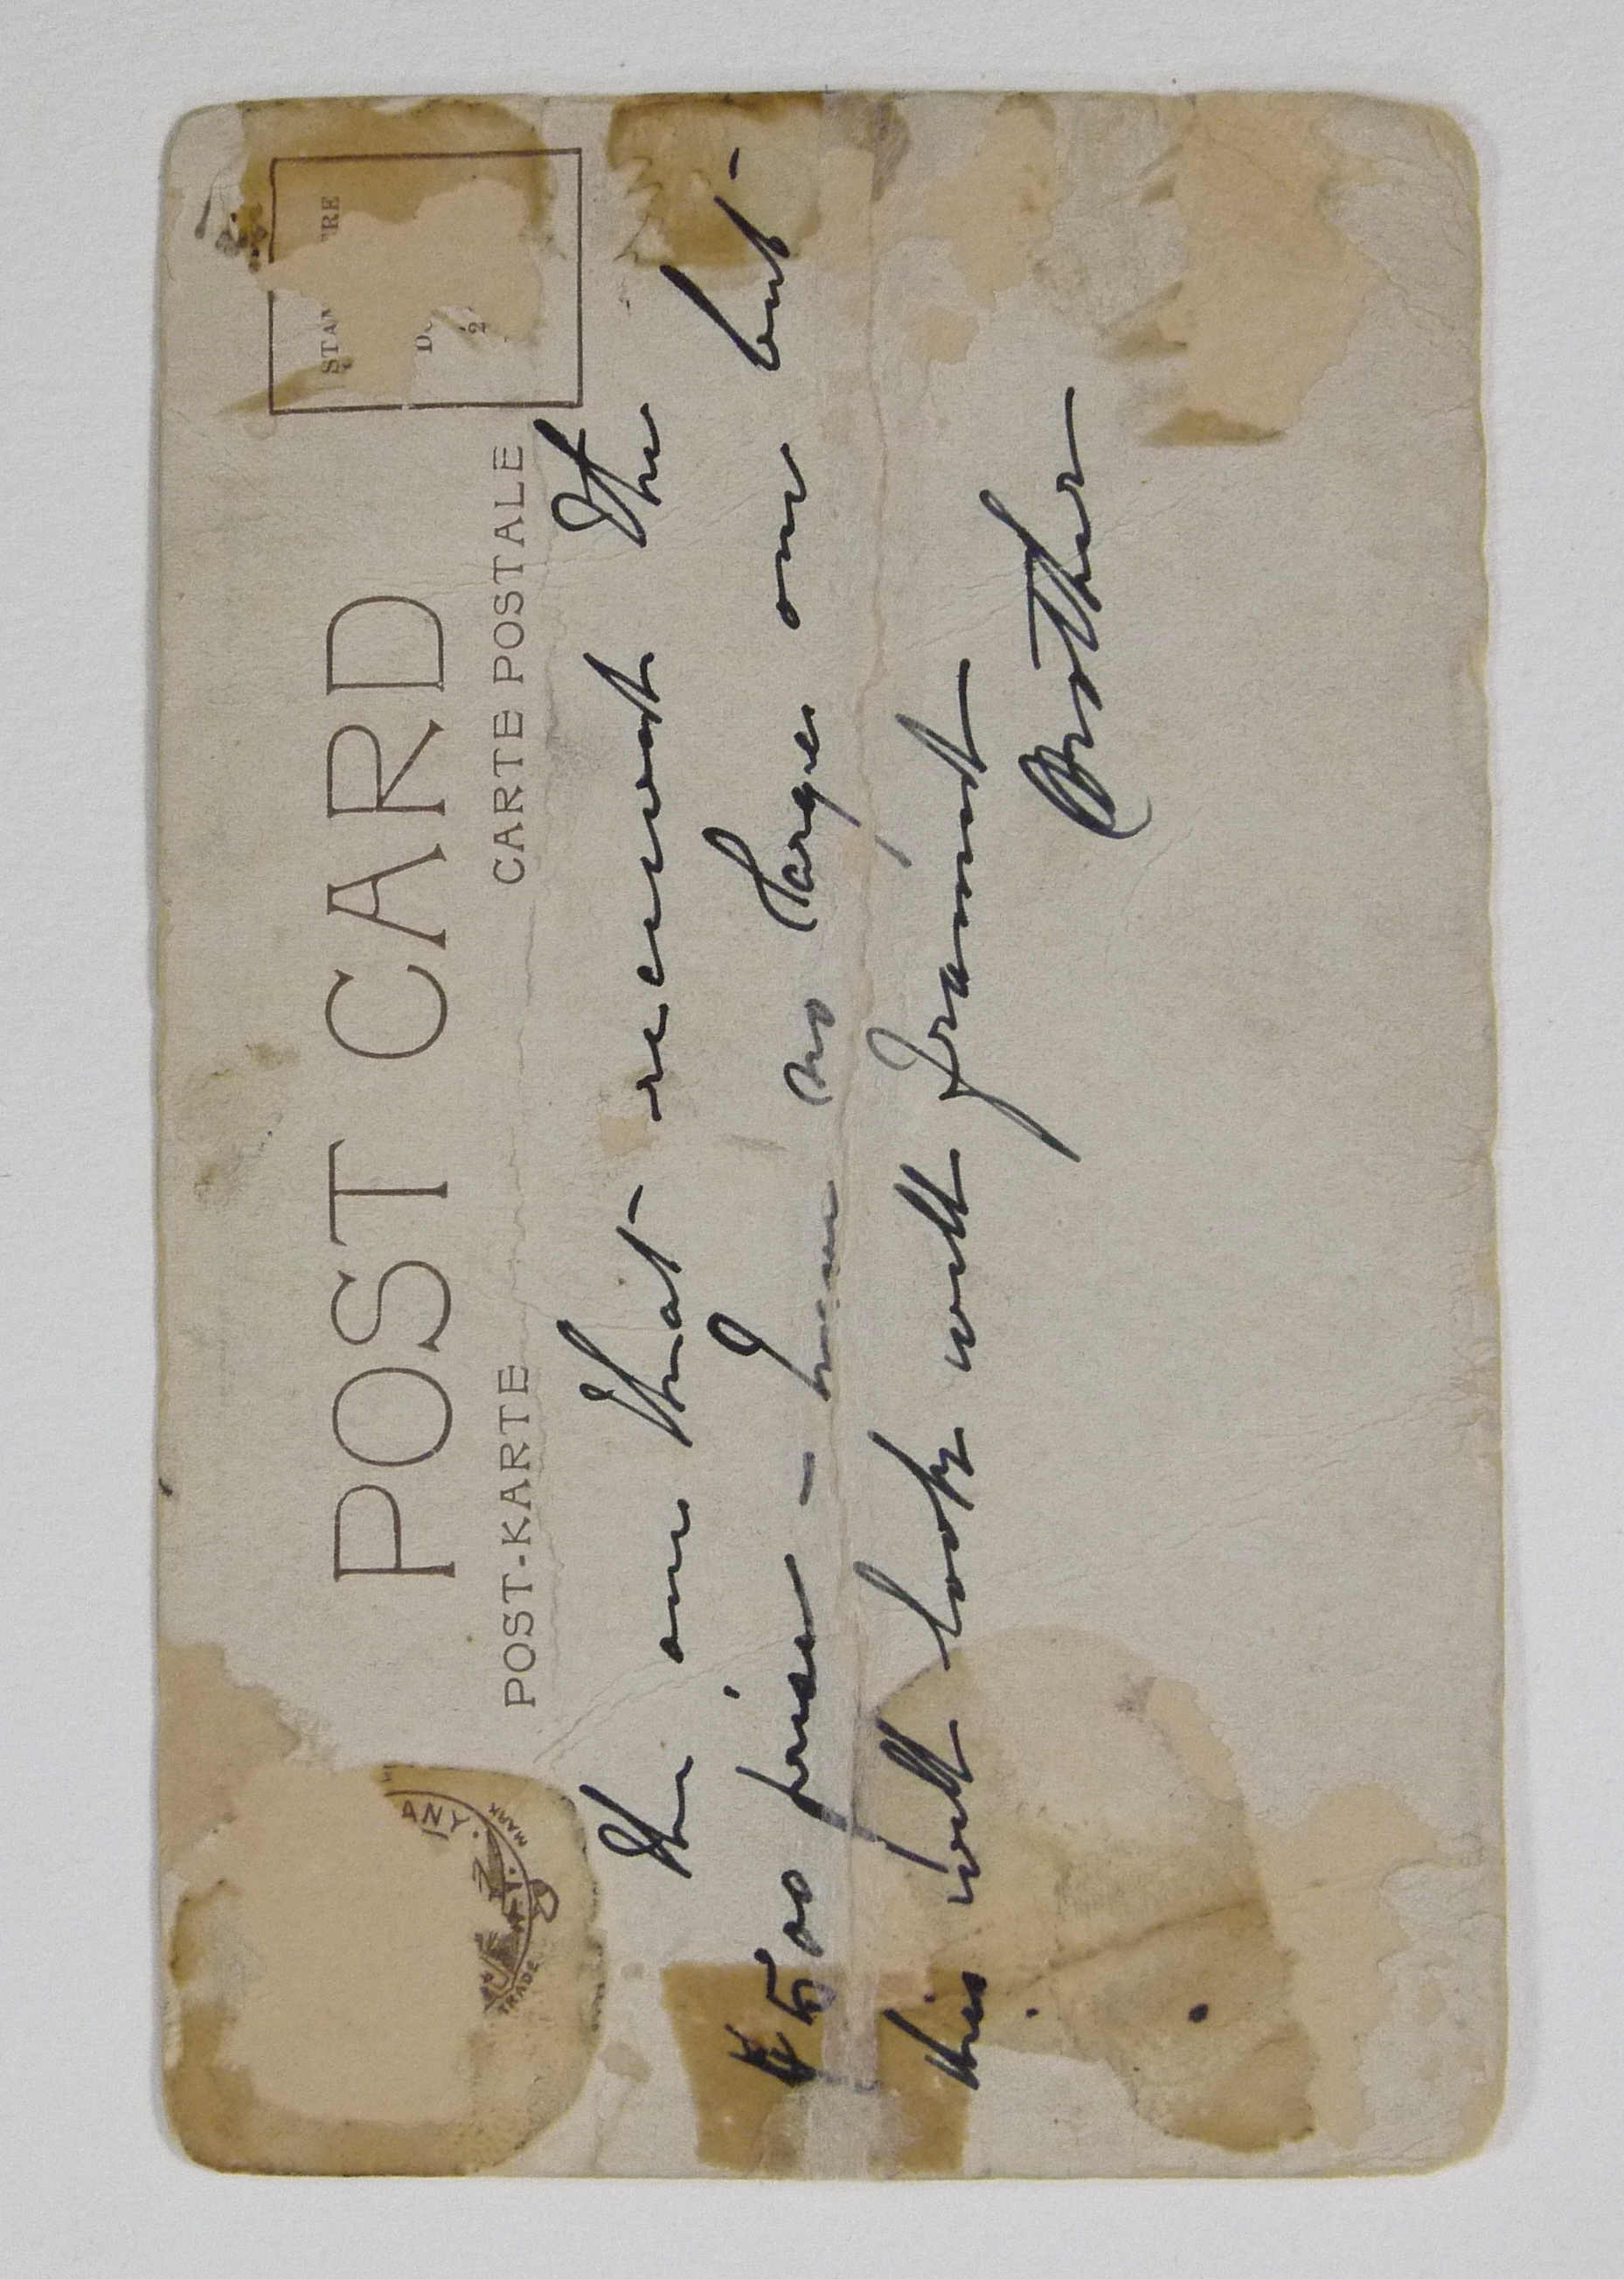 Verso of the postcard after conservation treatment.